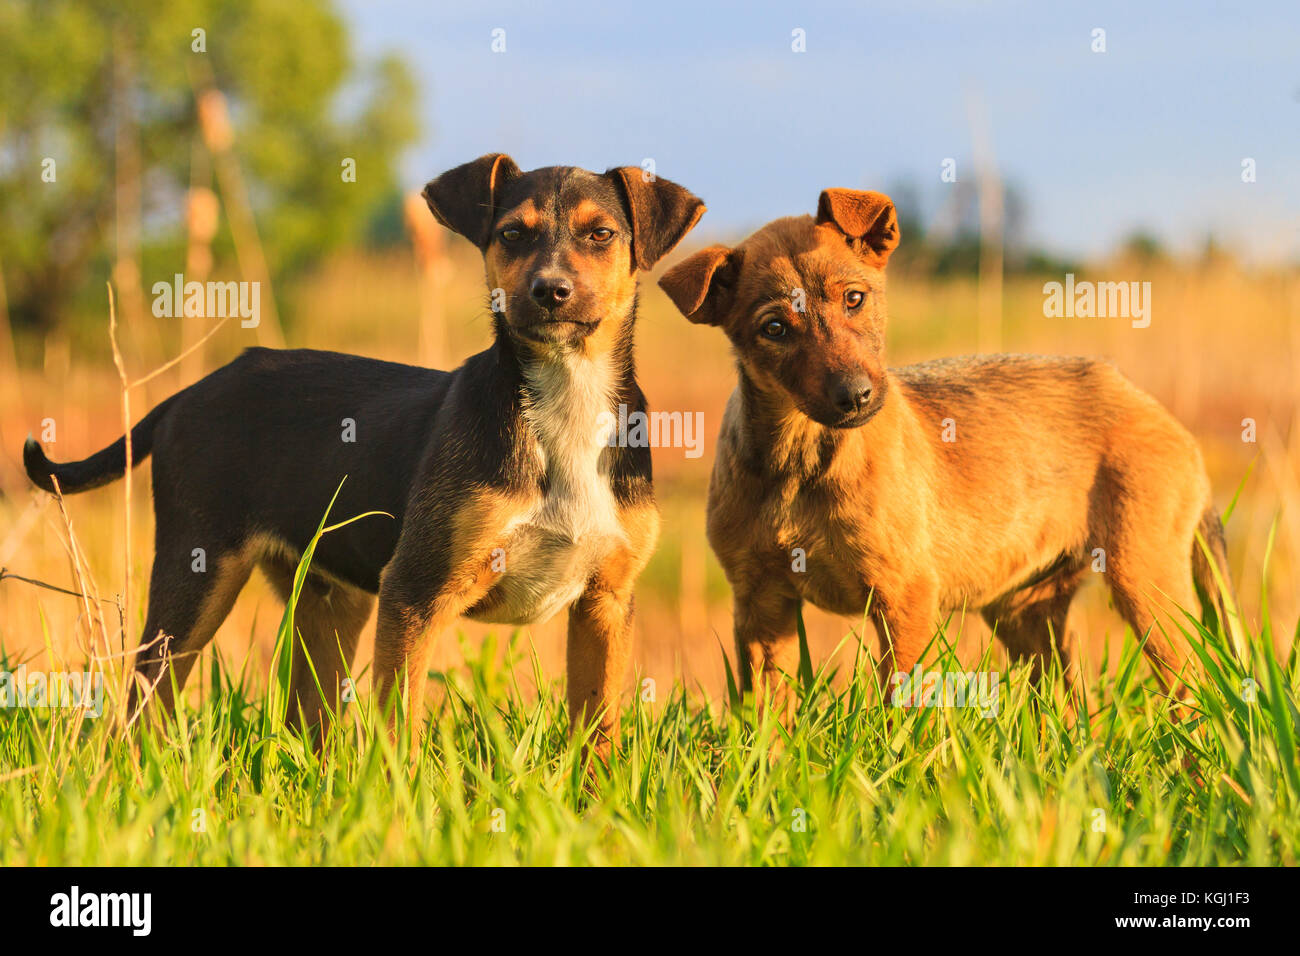 Gray small terrier mix dog stock photos gray small terrier mix dog puppies with merry eyes in among the green grass symbol of the year 2018 buycottarizona Image collections